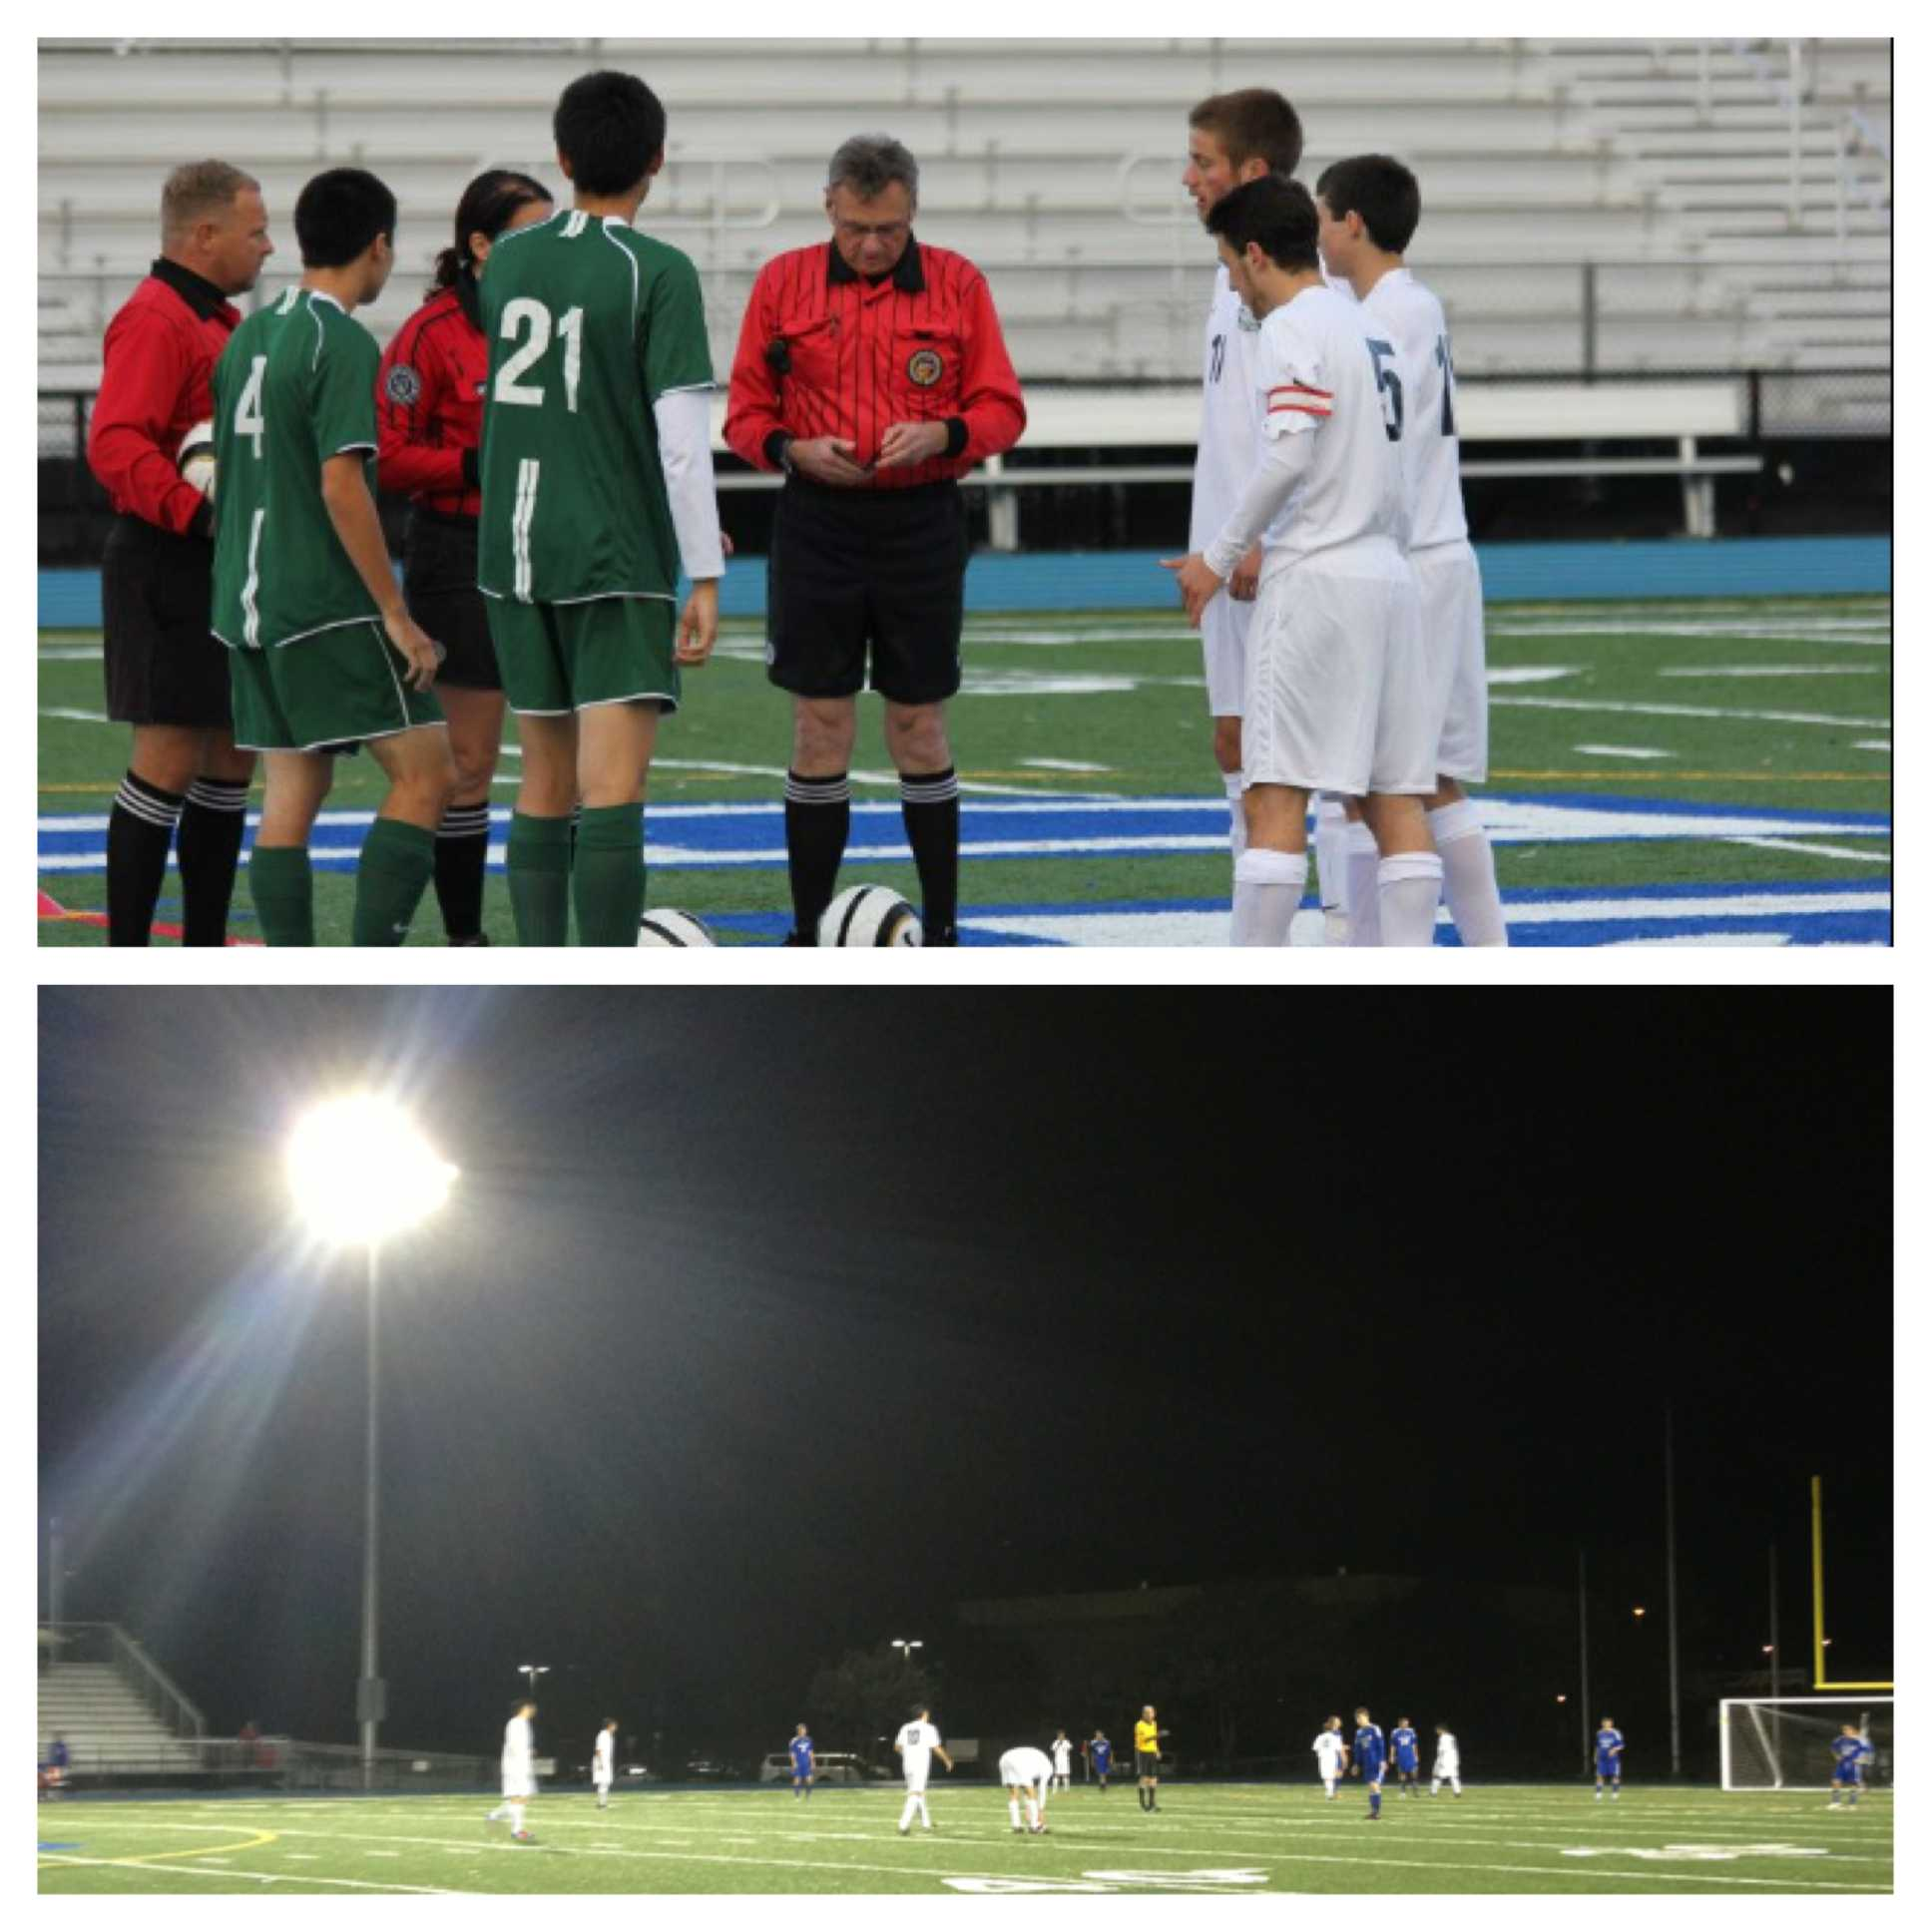 (Top Picture) Carlmont Captains, (from closest to furthest away in white) Andrew Durlofsky, Ryan Freeman, and Justin Harpster doing the coin toss. Hapster had two goals in the game Wednesday.